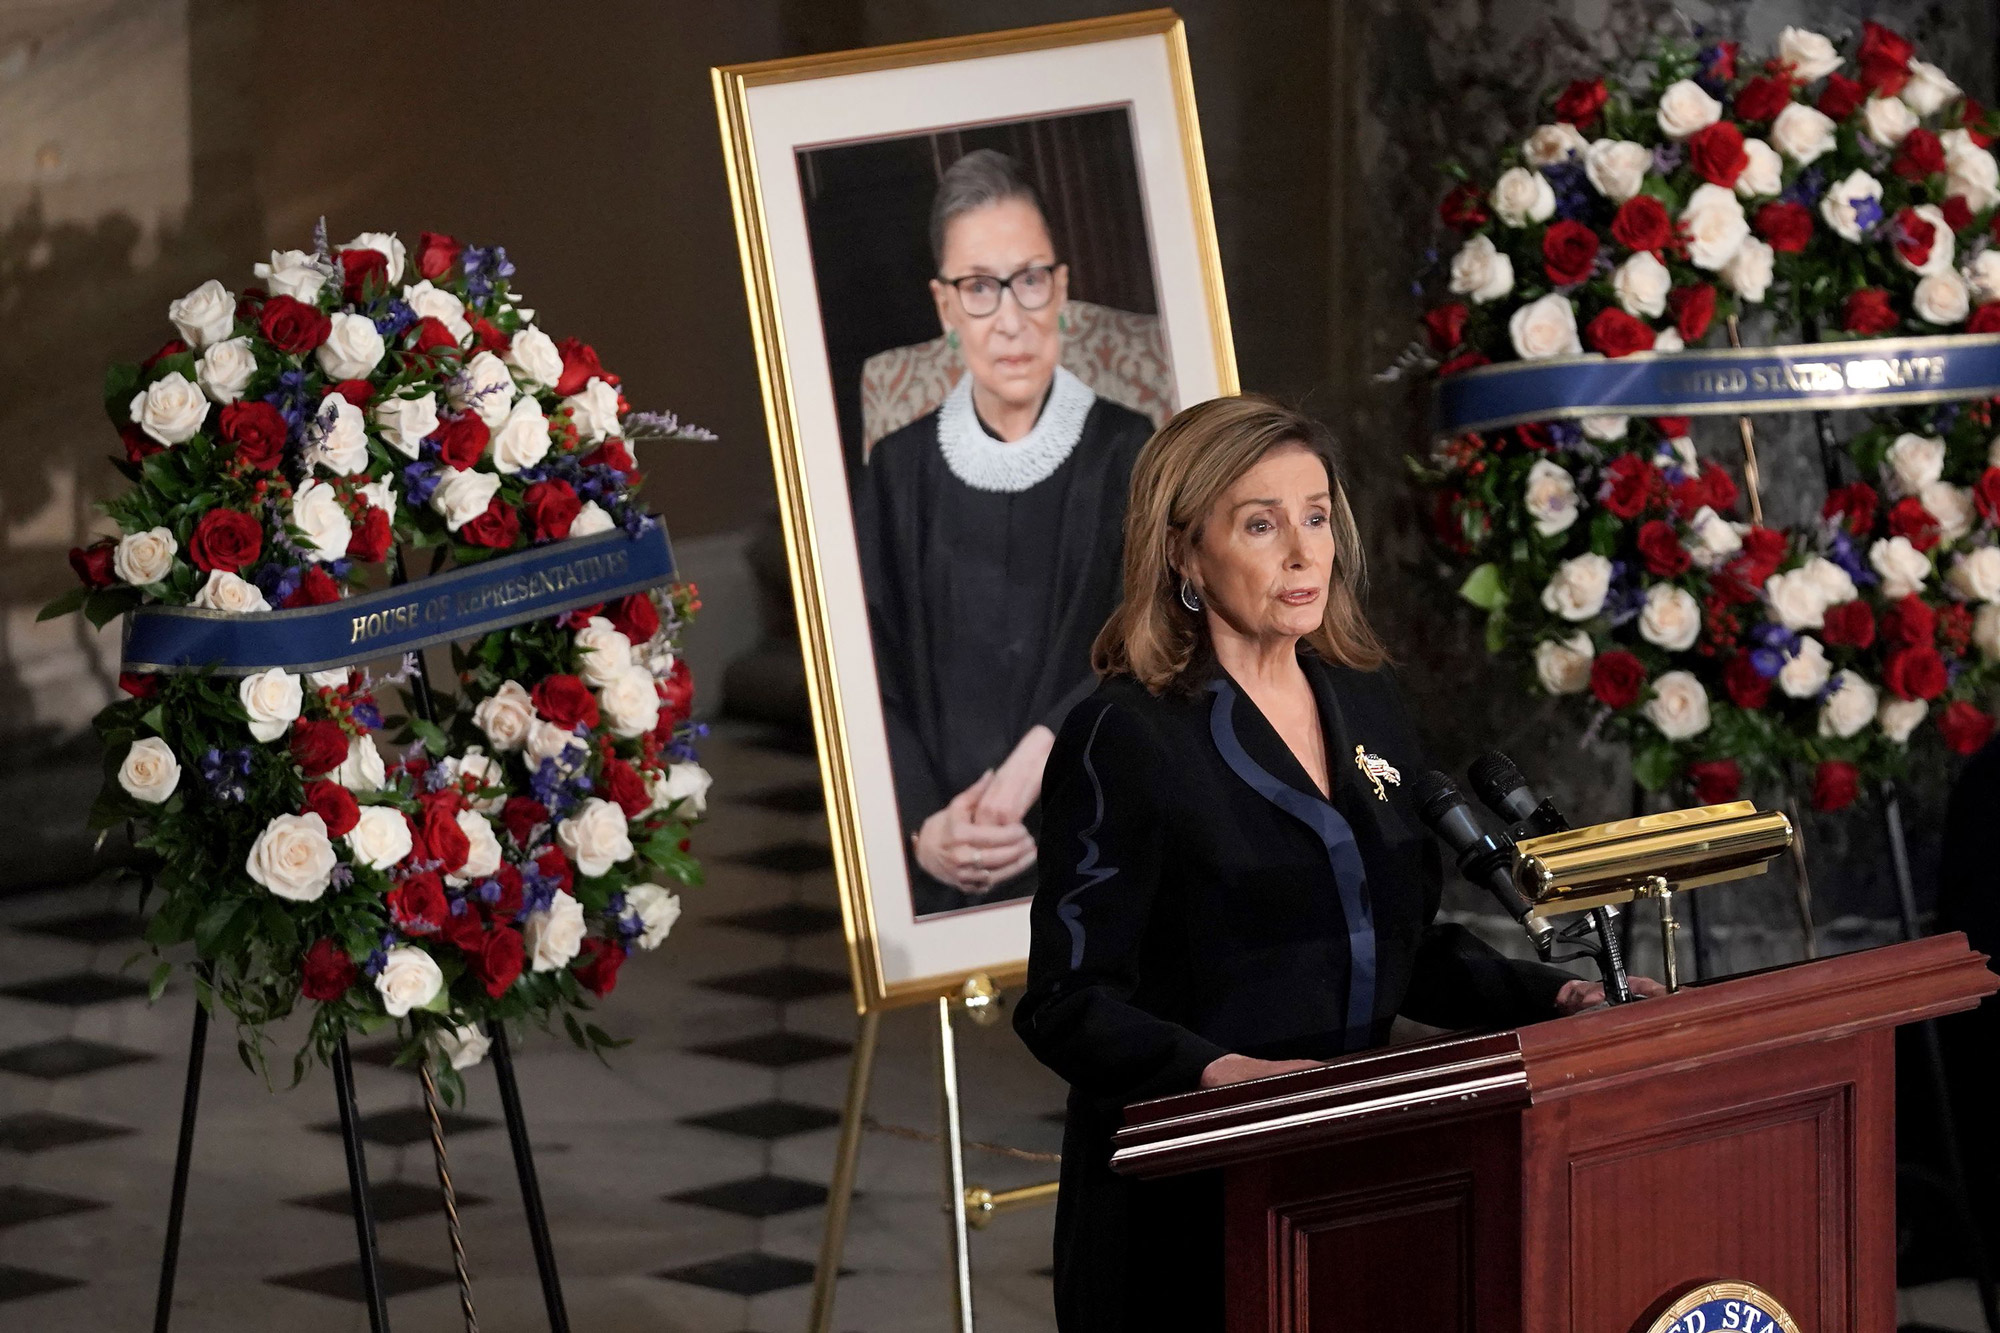 House Speaker Nancy Pelosi speaks during a ceremony to honor the late Justice Ruth Bader Ginsburg as she lies in state at National Statuary Hallat the US Capitol in Washington, DC, on September 25.